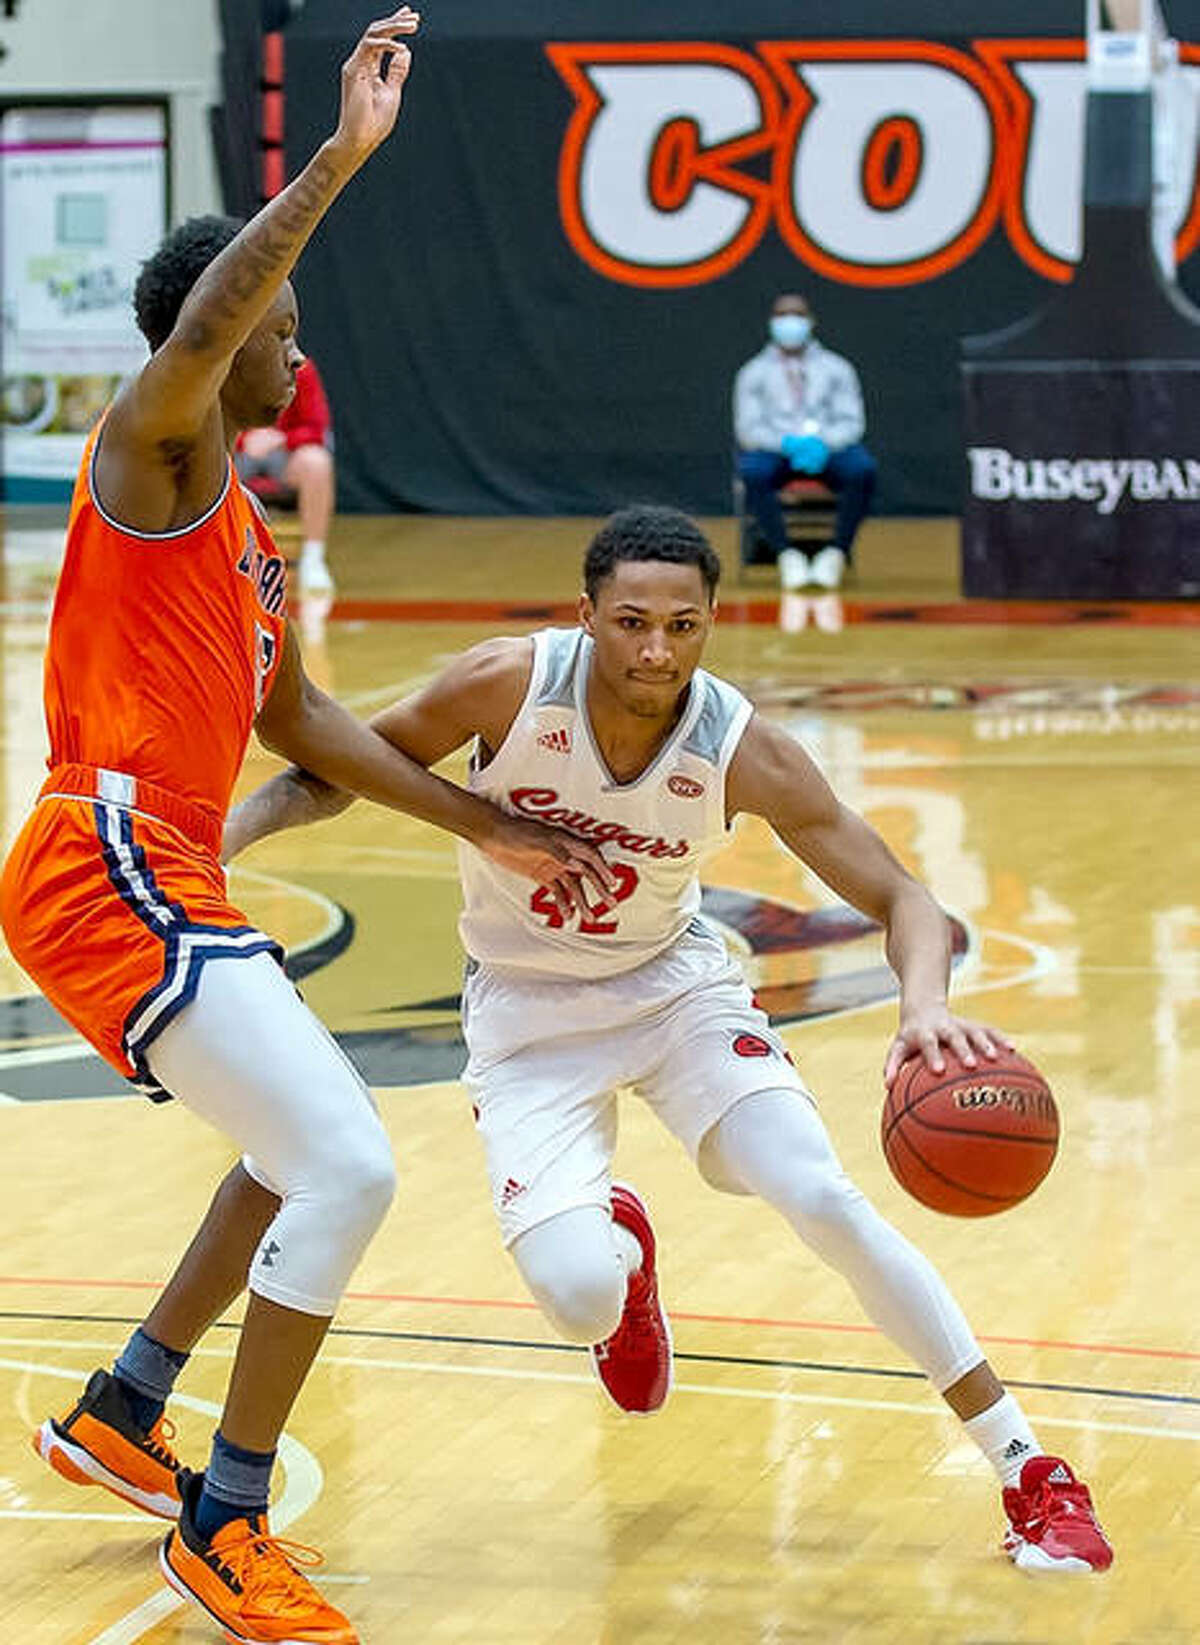 SIUE's Shamar Wright (42) drives to the basket in Thursday's 66-53 victory over UT Martin at First Community Arena. He scored 17 points and twin brother Lamar Wright scored 16 for the Cougars.